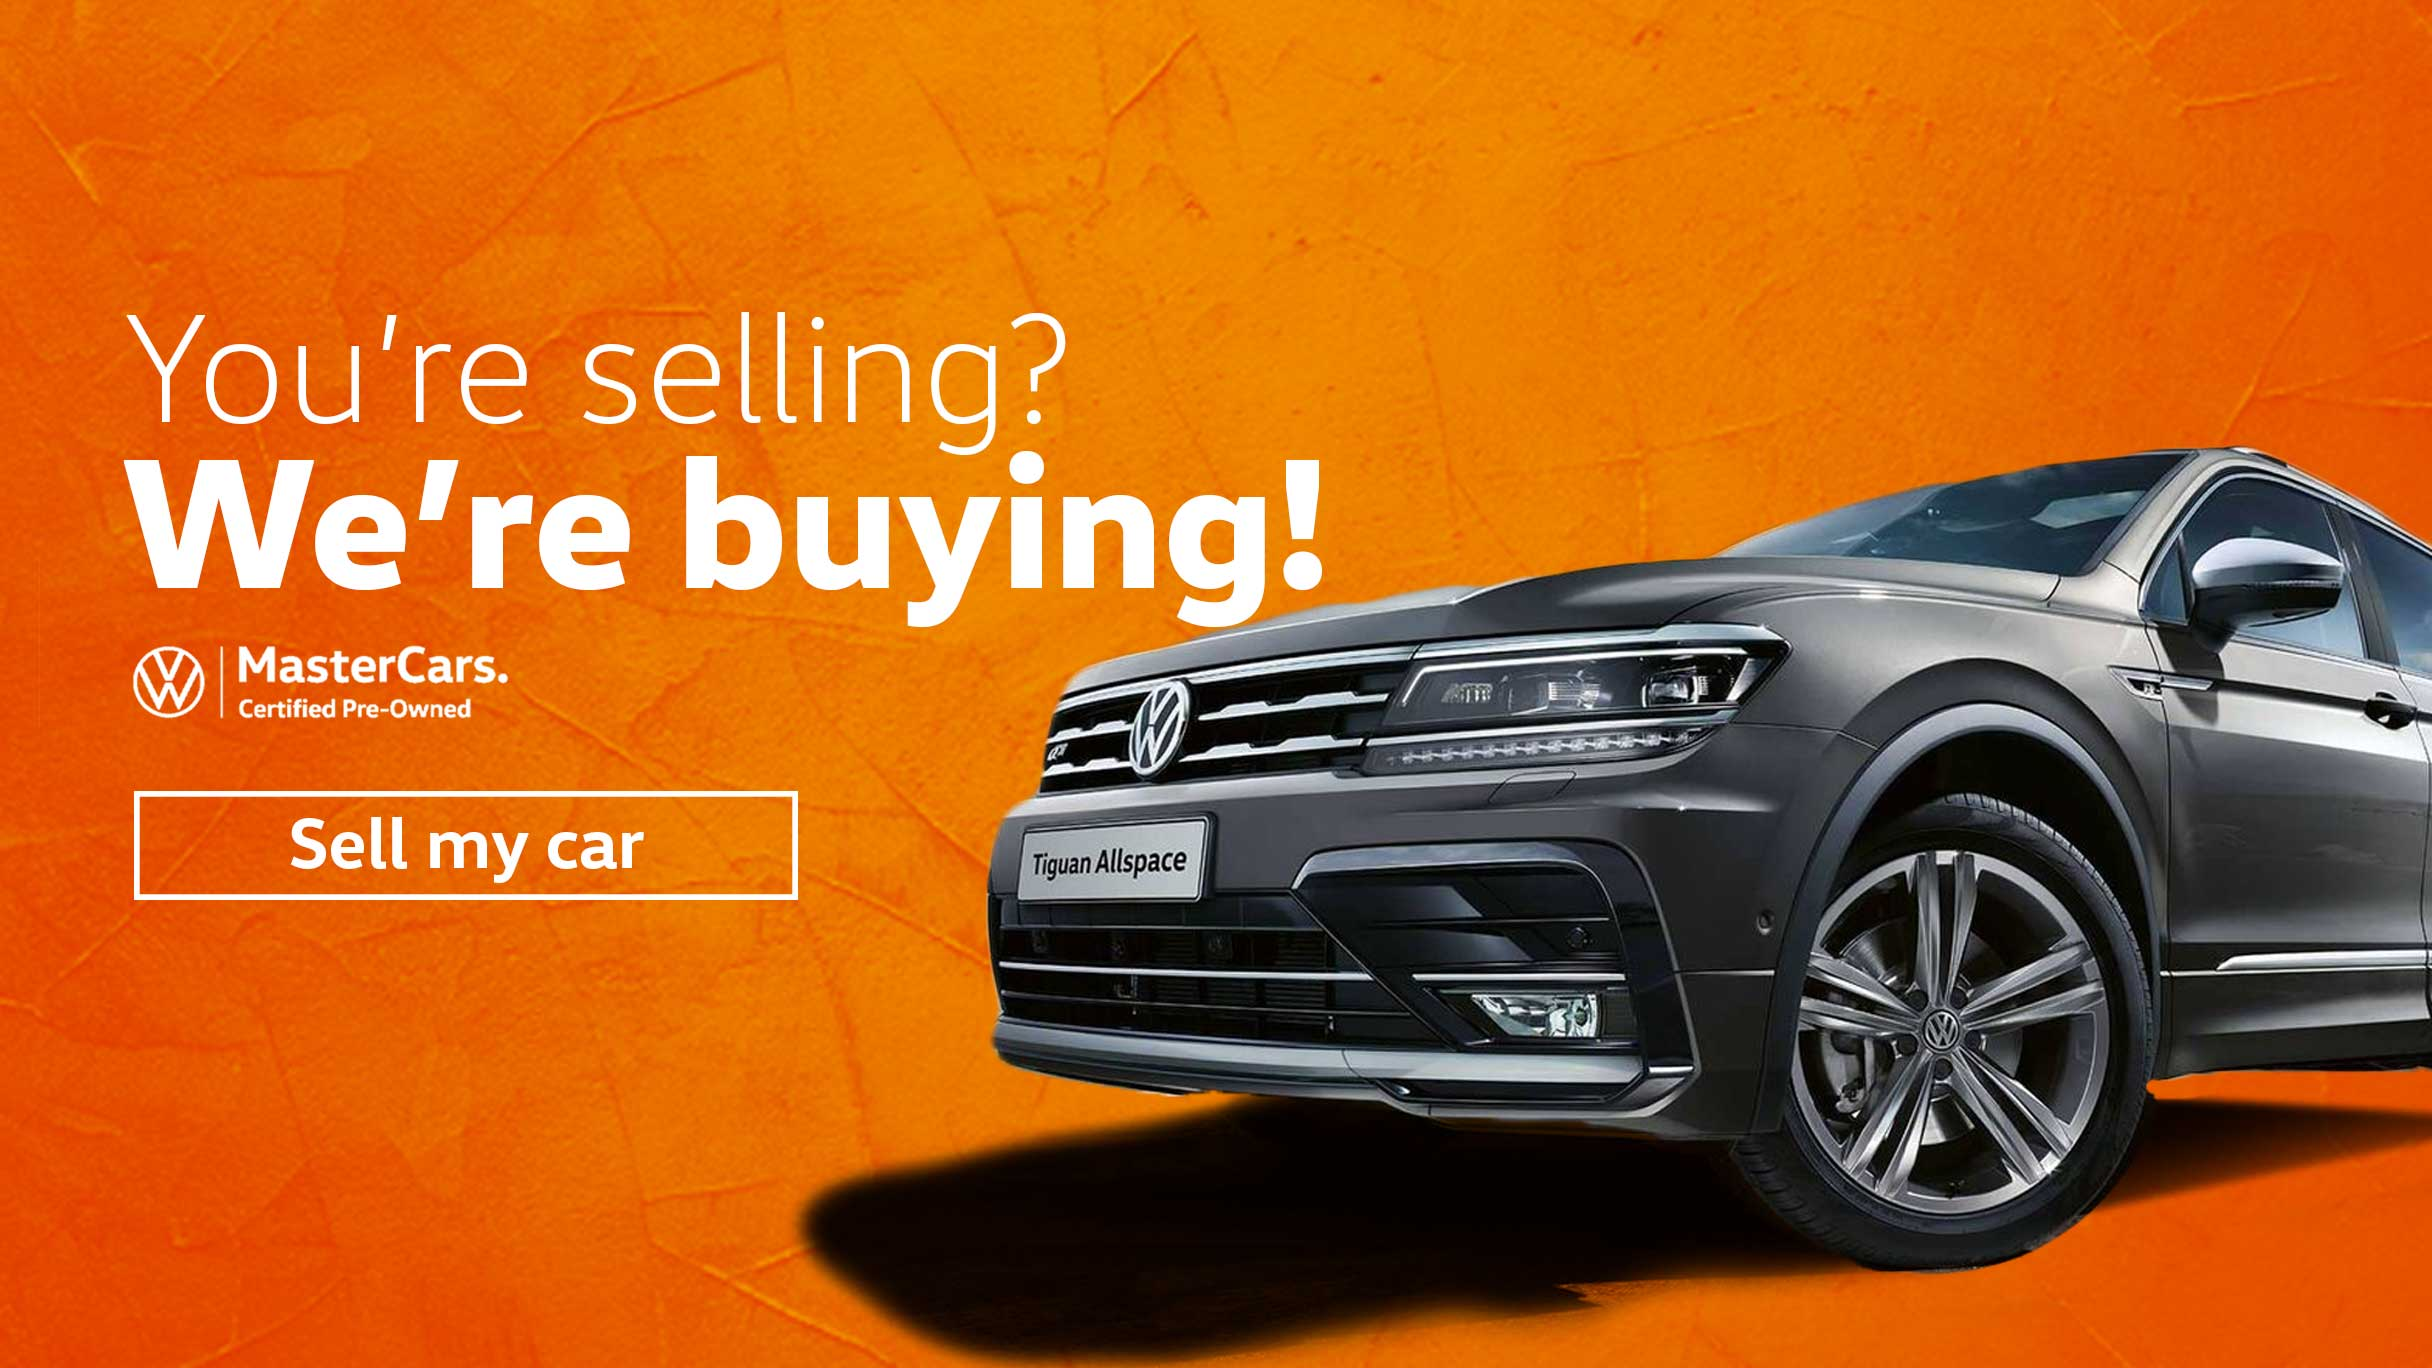 Barons Cape Town buys cars -sell you car to us